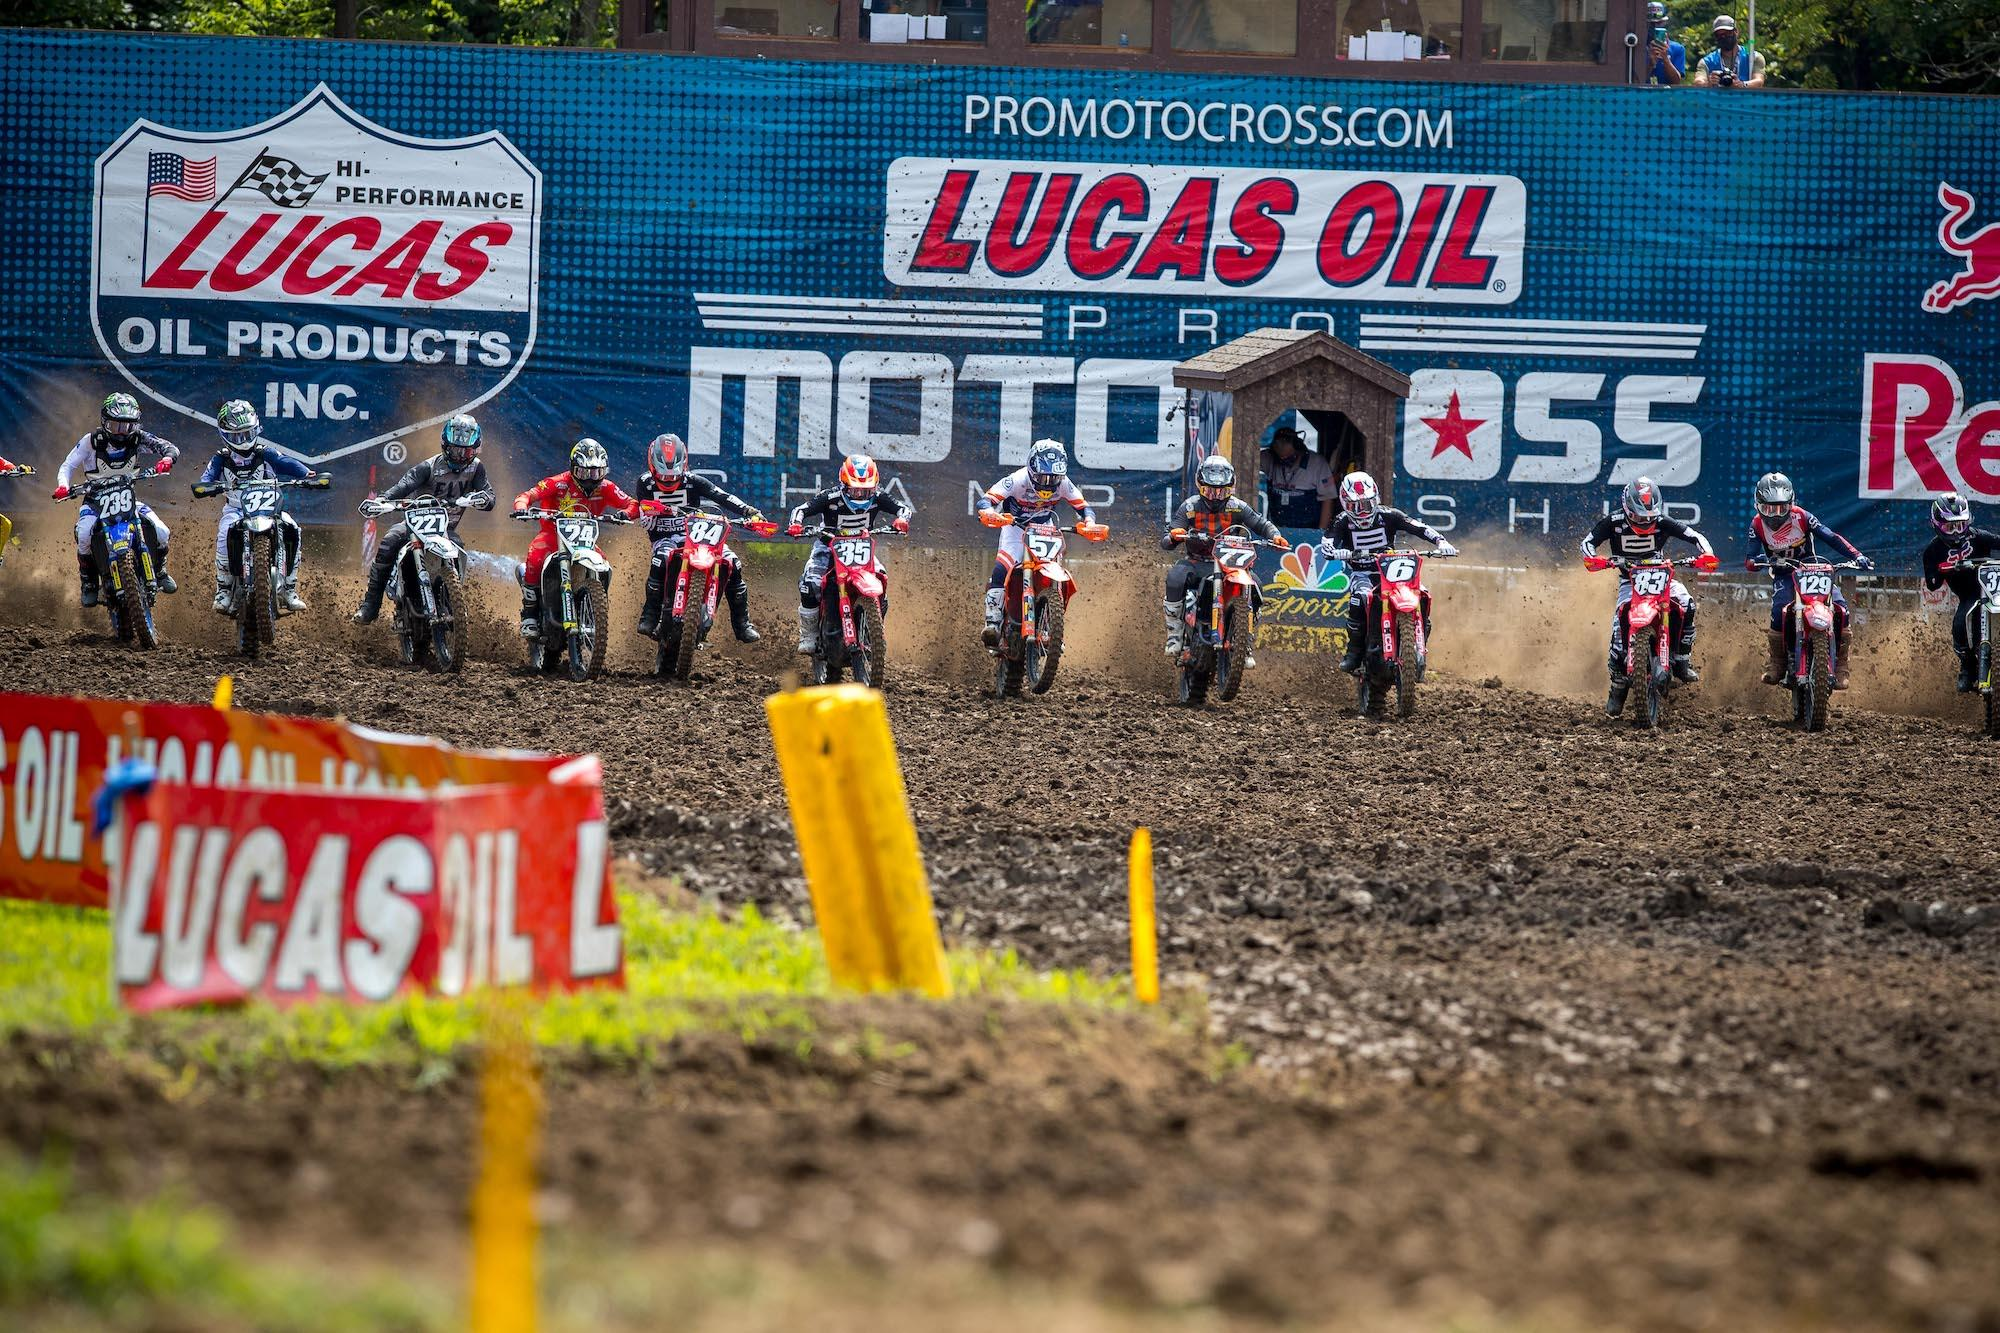 Lucas Oil Production Studios will help bring the action to the passionate motocross audience, with extensive live broadcasts on MAVTV and NBC Sports, plus live streaming via Peacock.